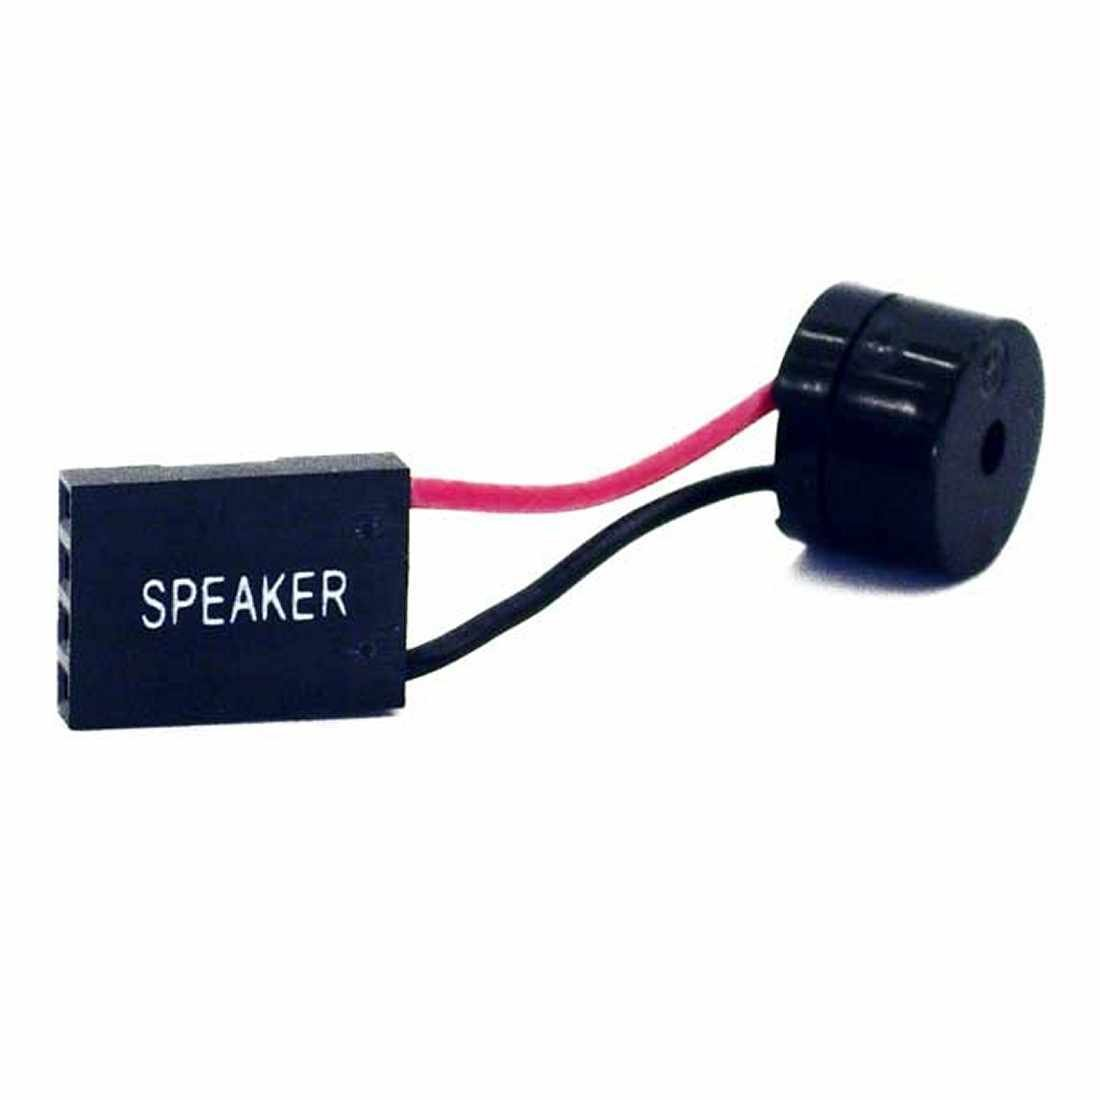 Pavitra Puja 5 Pcs. PC Computer Internal Beeper Mini Onboard Case Speaker for Motherboard PCB